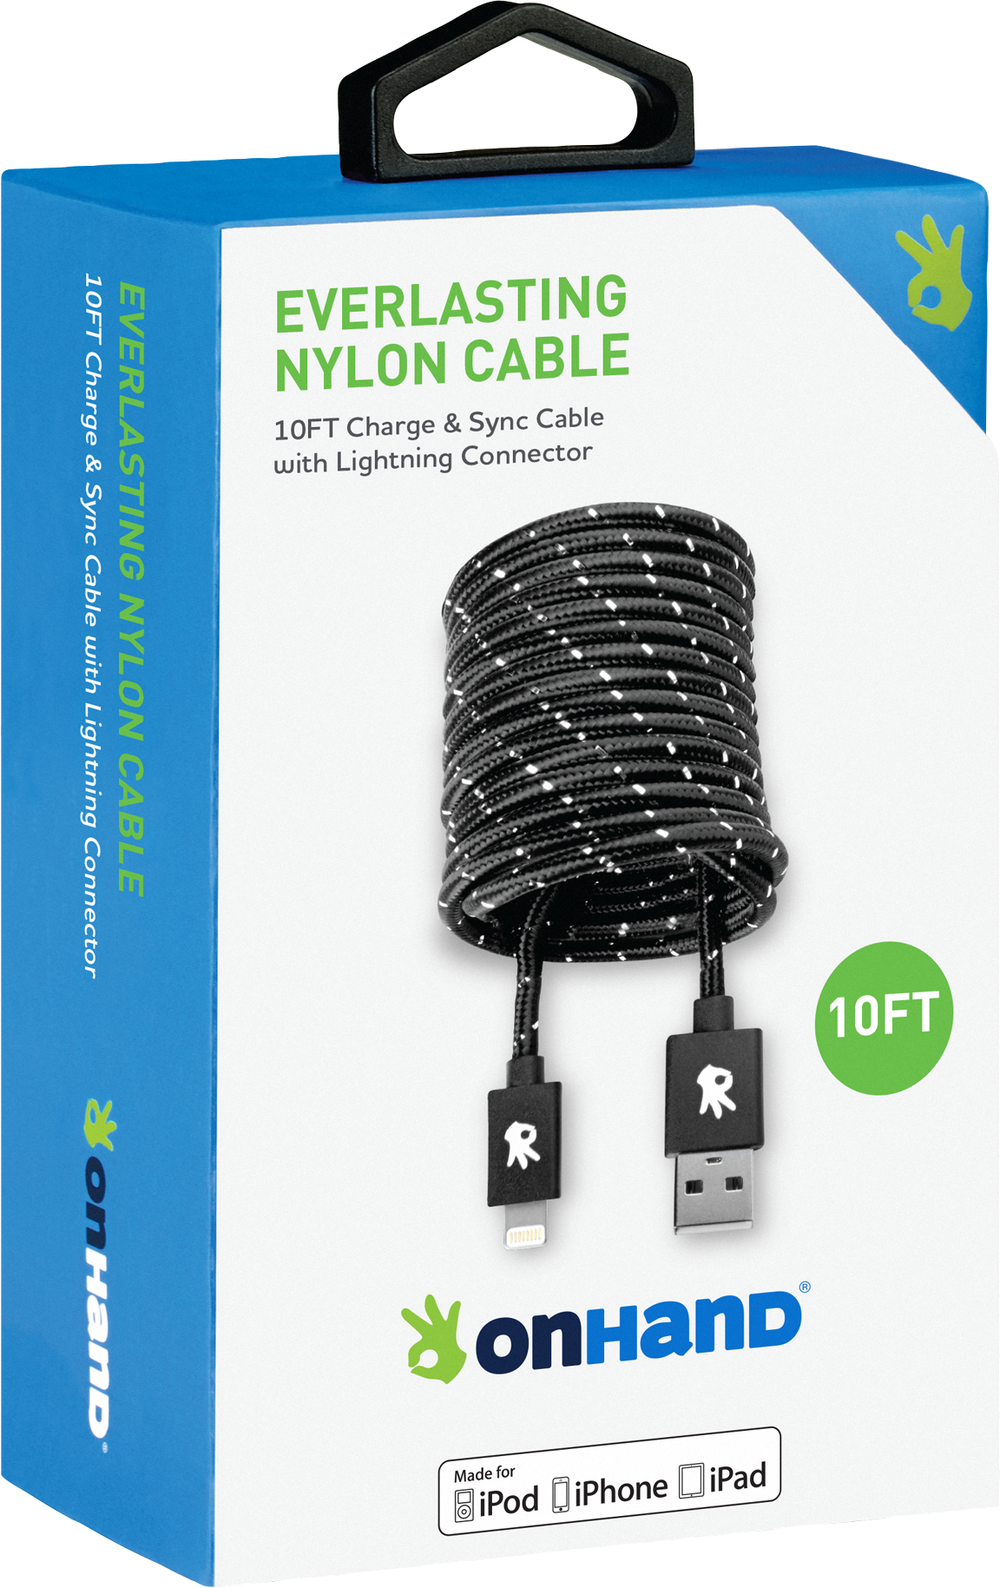 OnHand Everlasting Nylon Sync & Charge Cable - 10ft BP USB - Lightning-MFi Certified